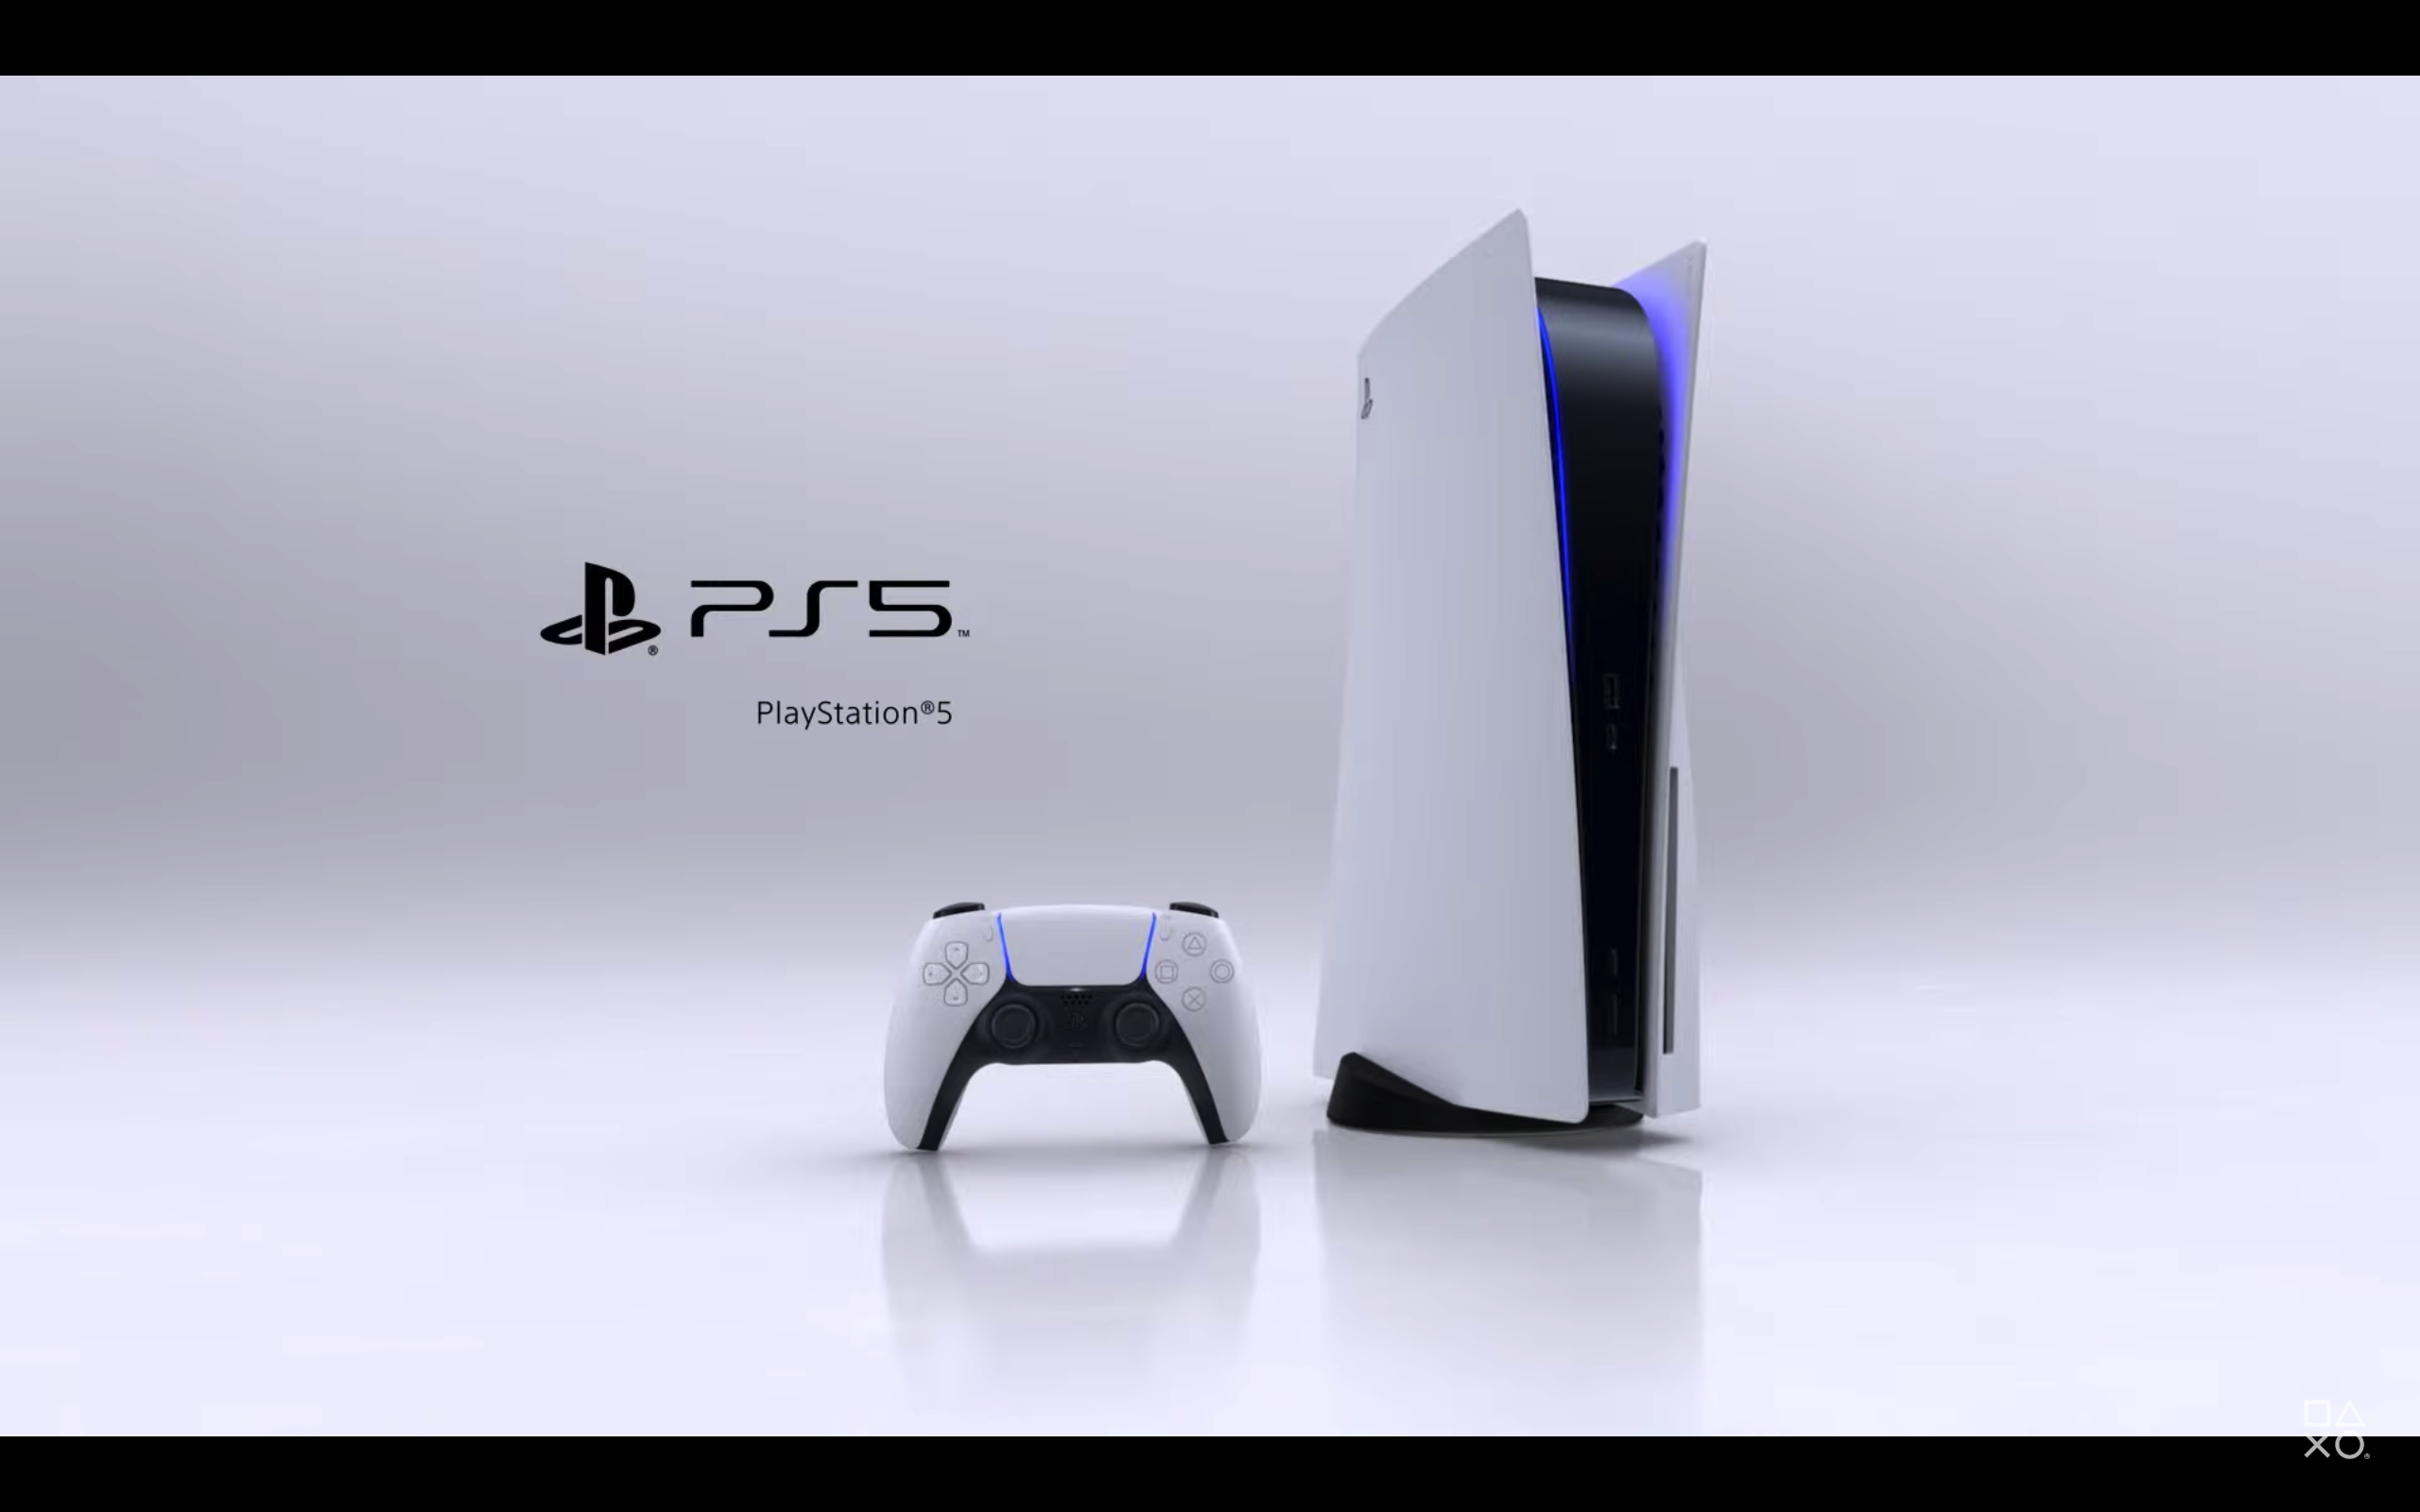 PlayStation 5 sorprende al mundo